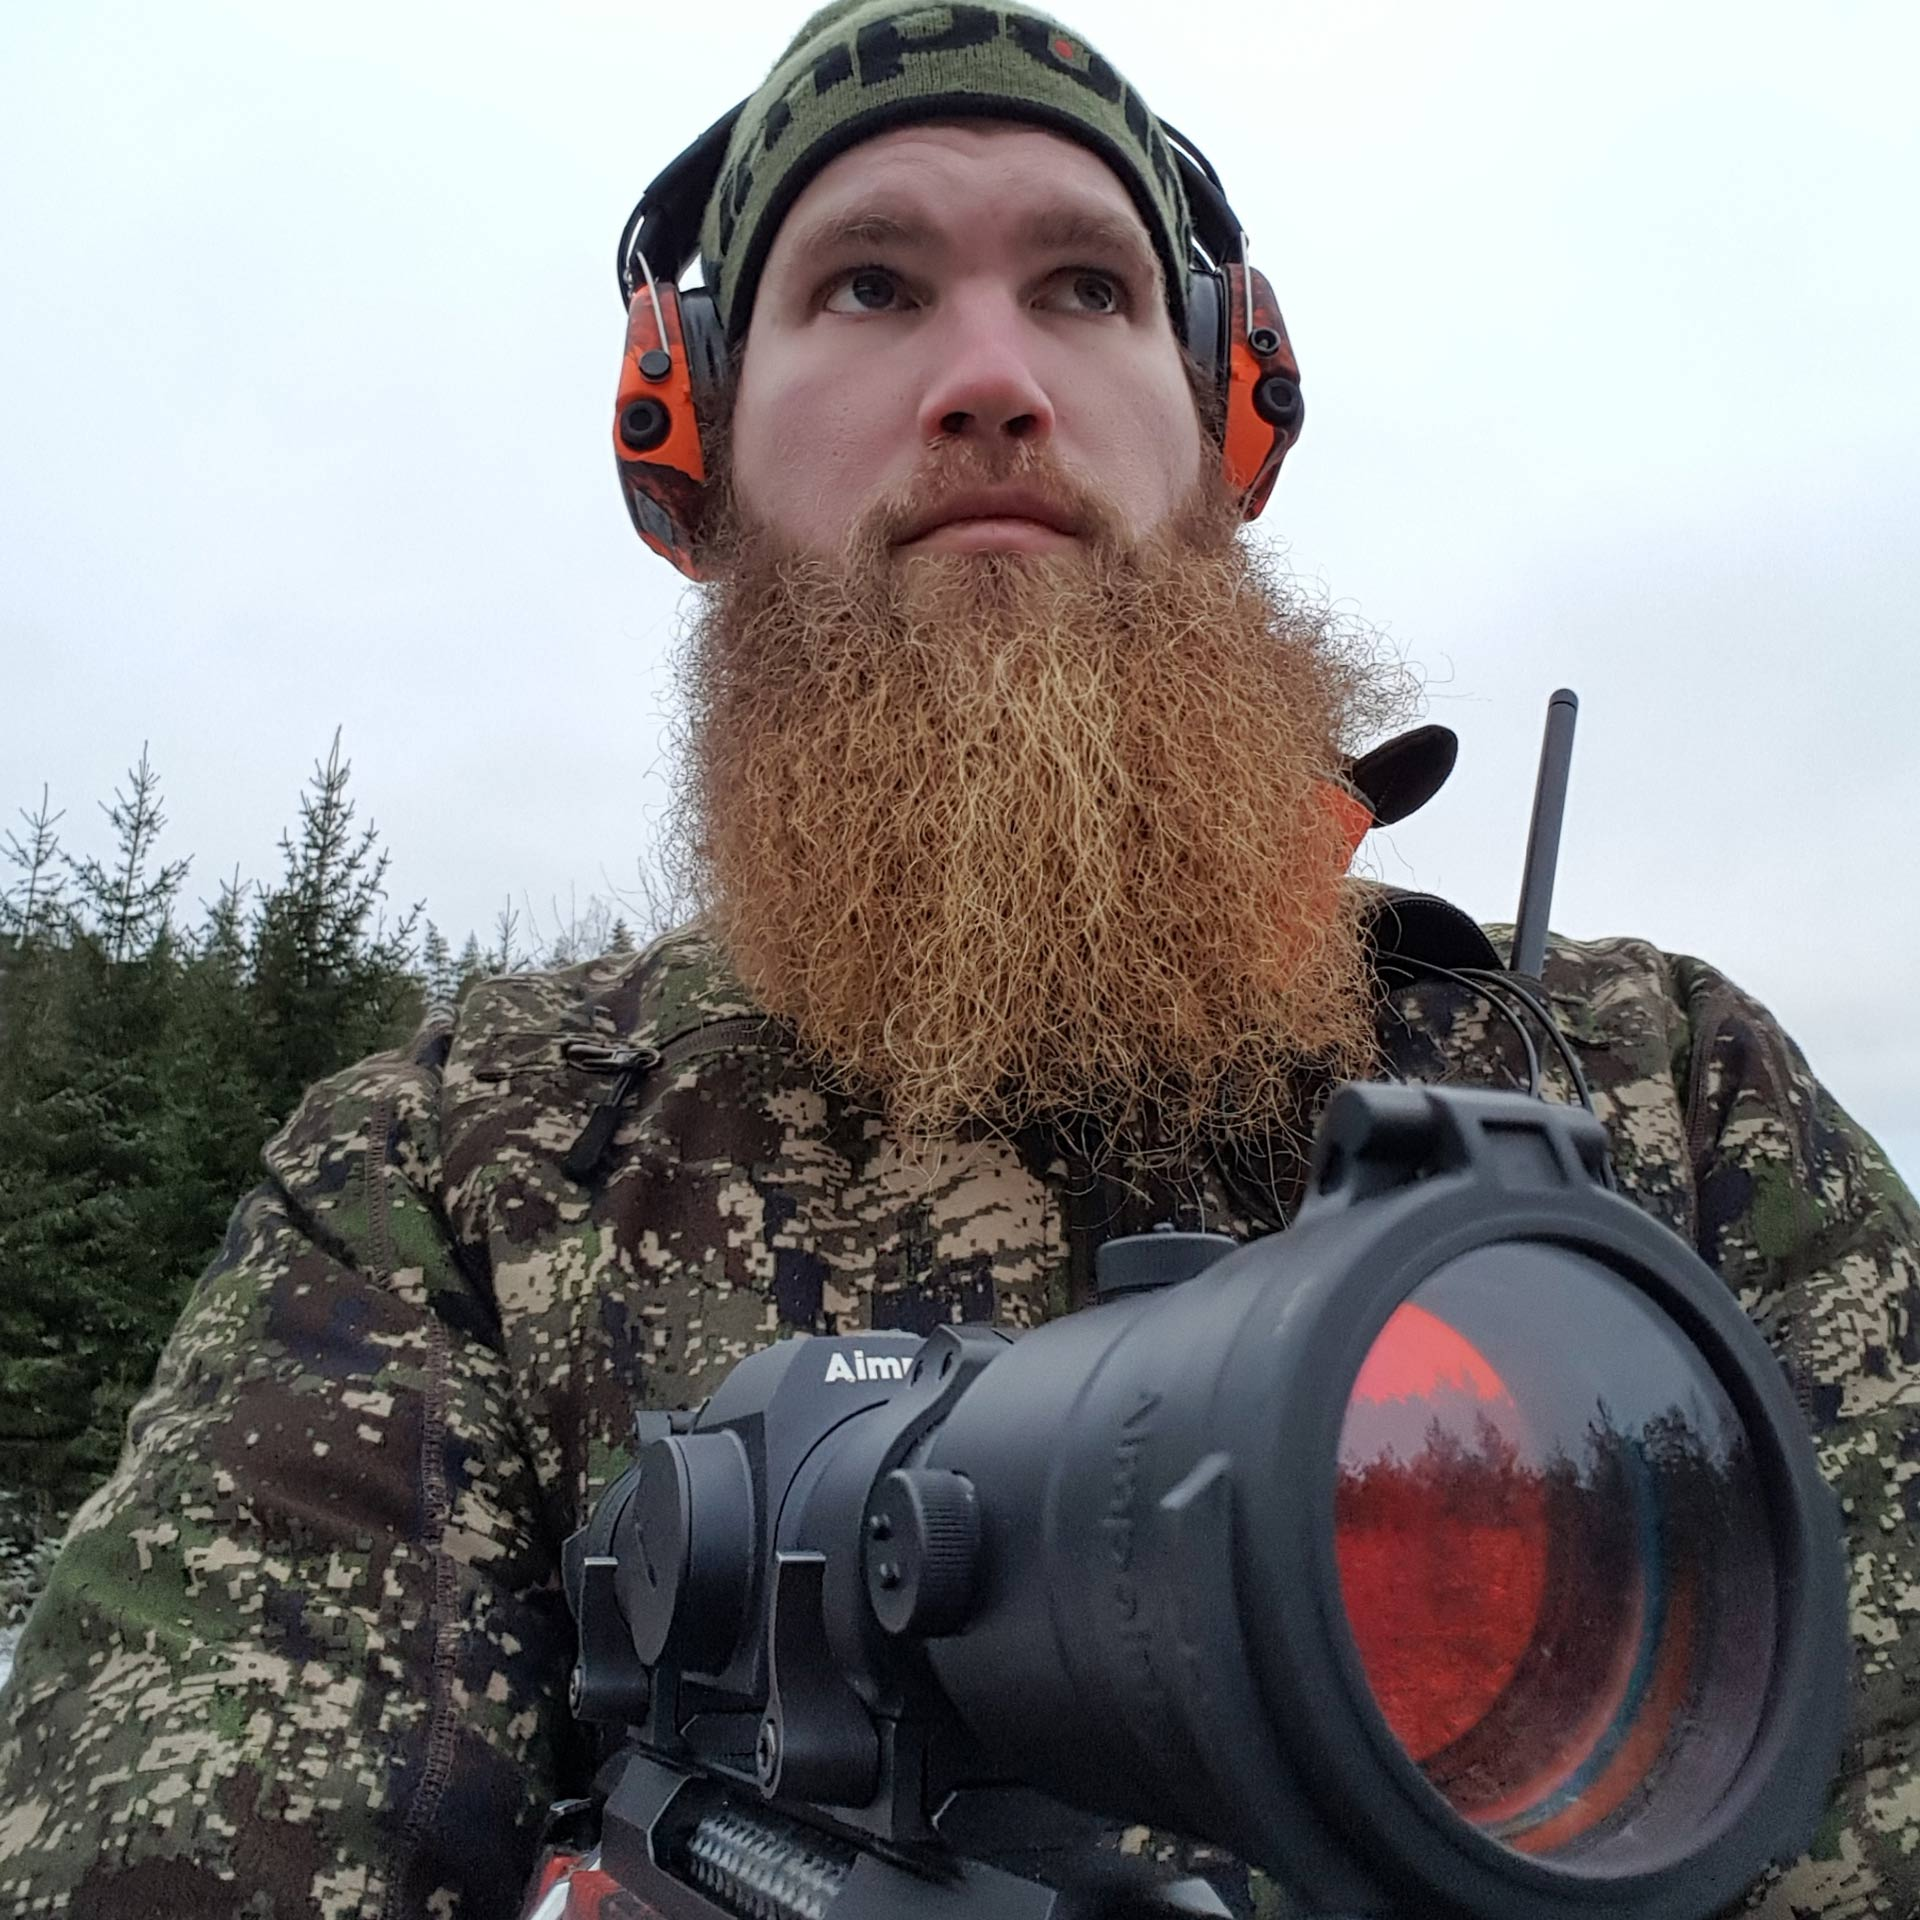 Dick Larsson - A driven hunter - Aimpoint red dot sight